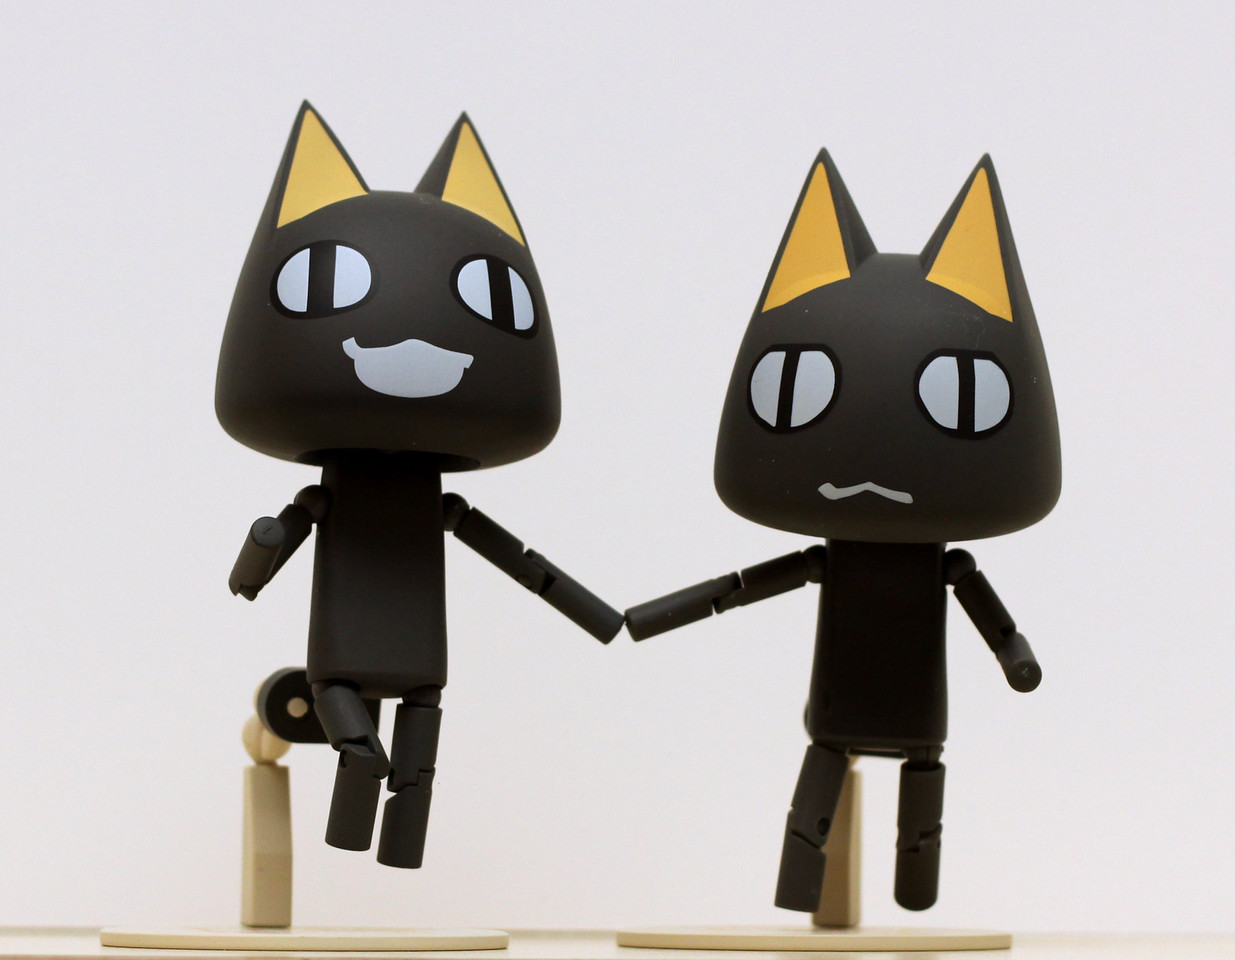 KURO twins arrived today! I'll have to figure out names for them. Still waiting on the last cat to arrive.